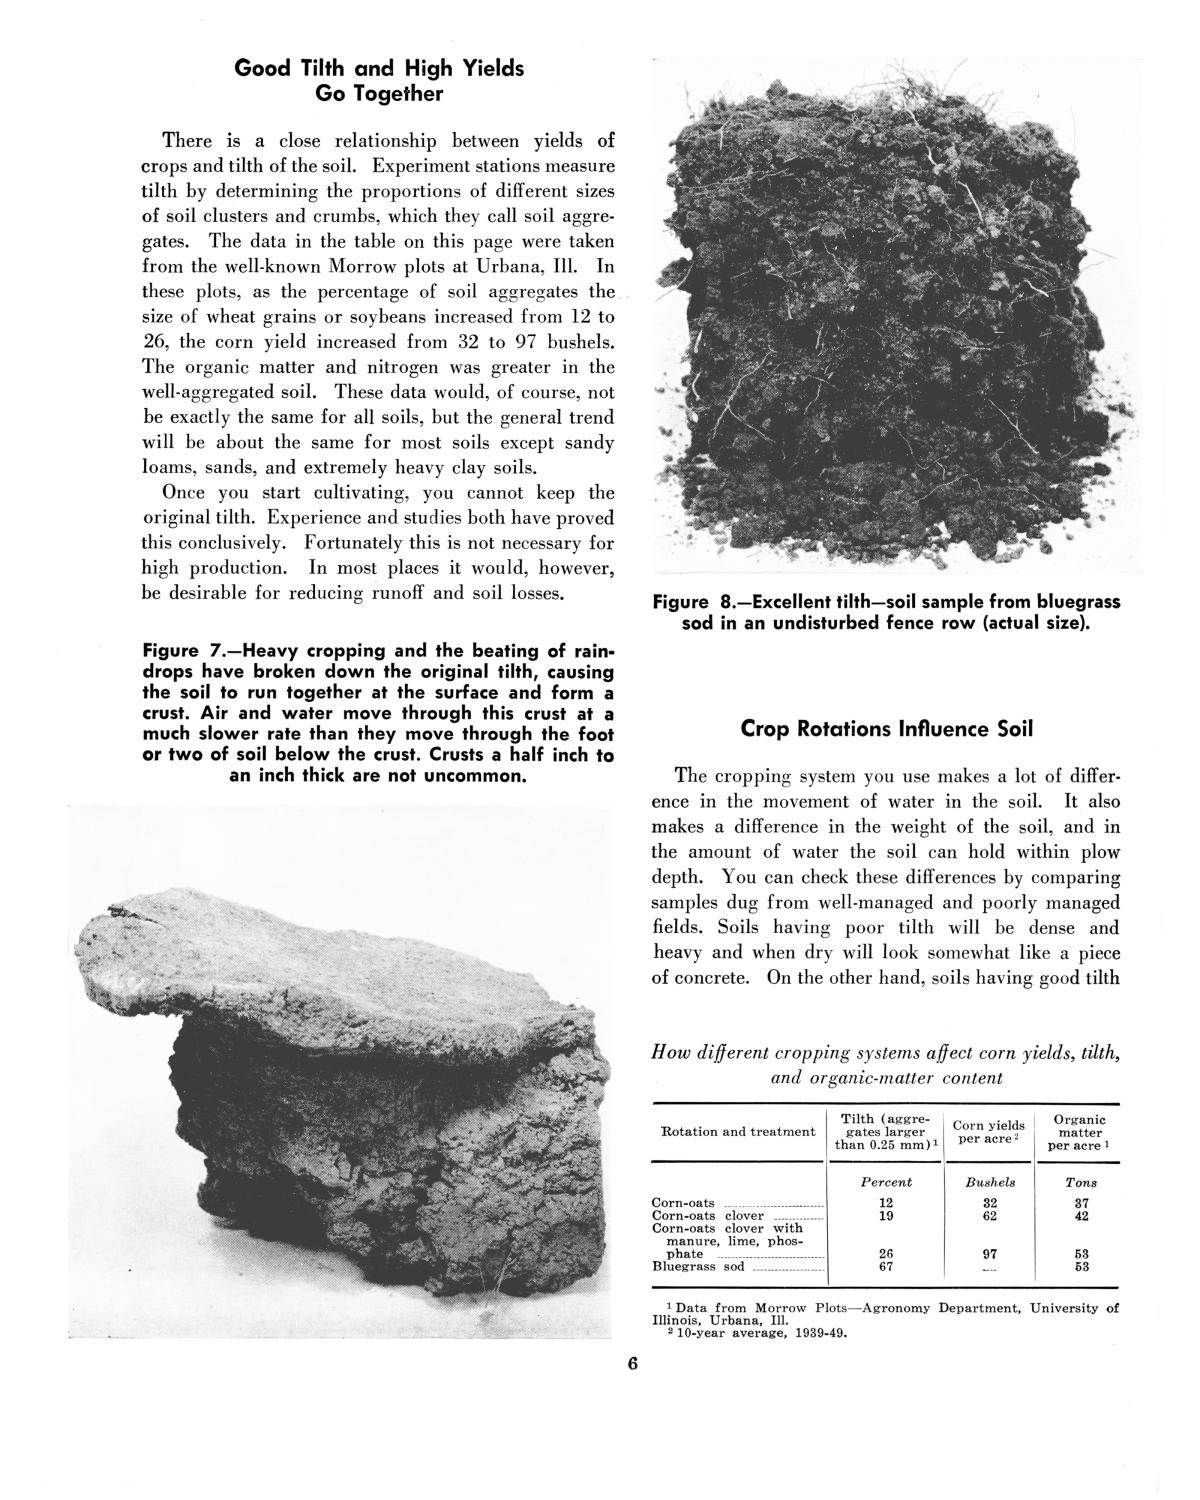 Your soil crumbly or cloddy page 6 digital library for Soil library